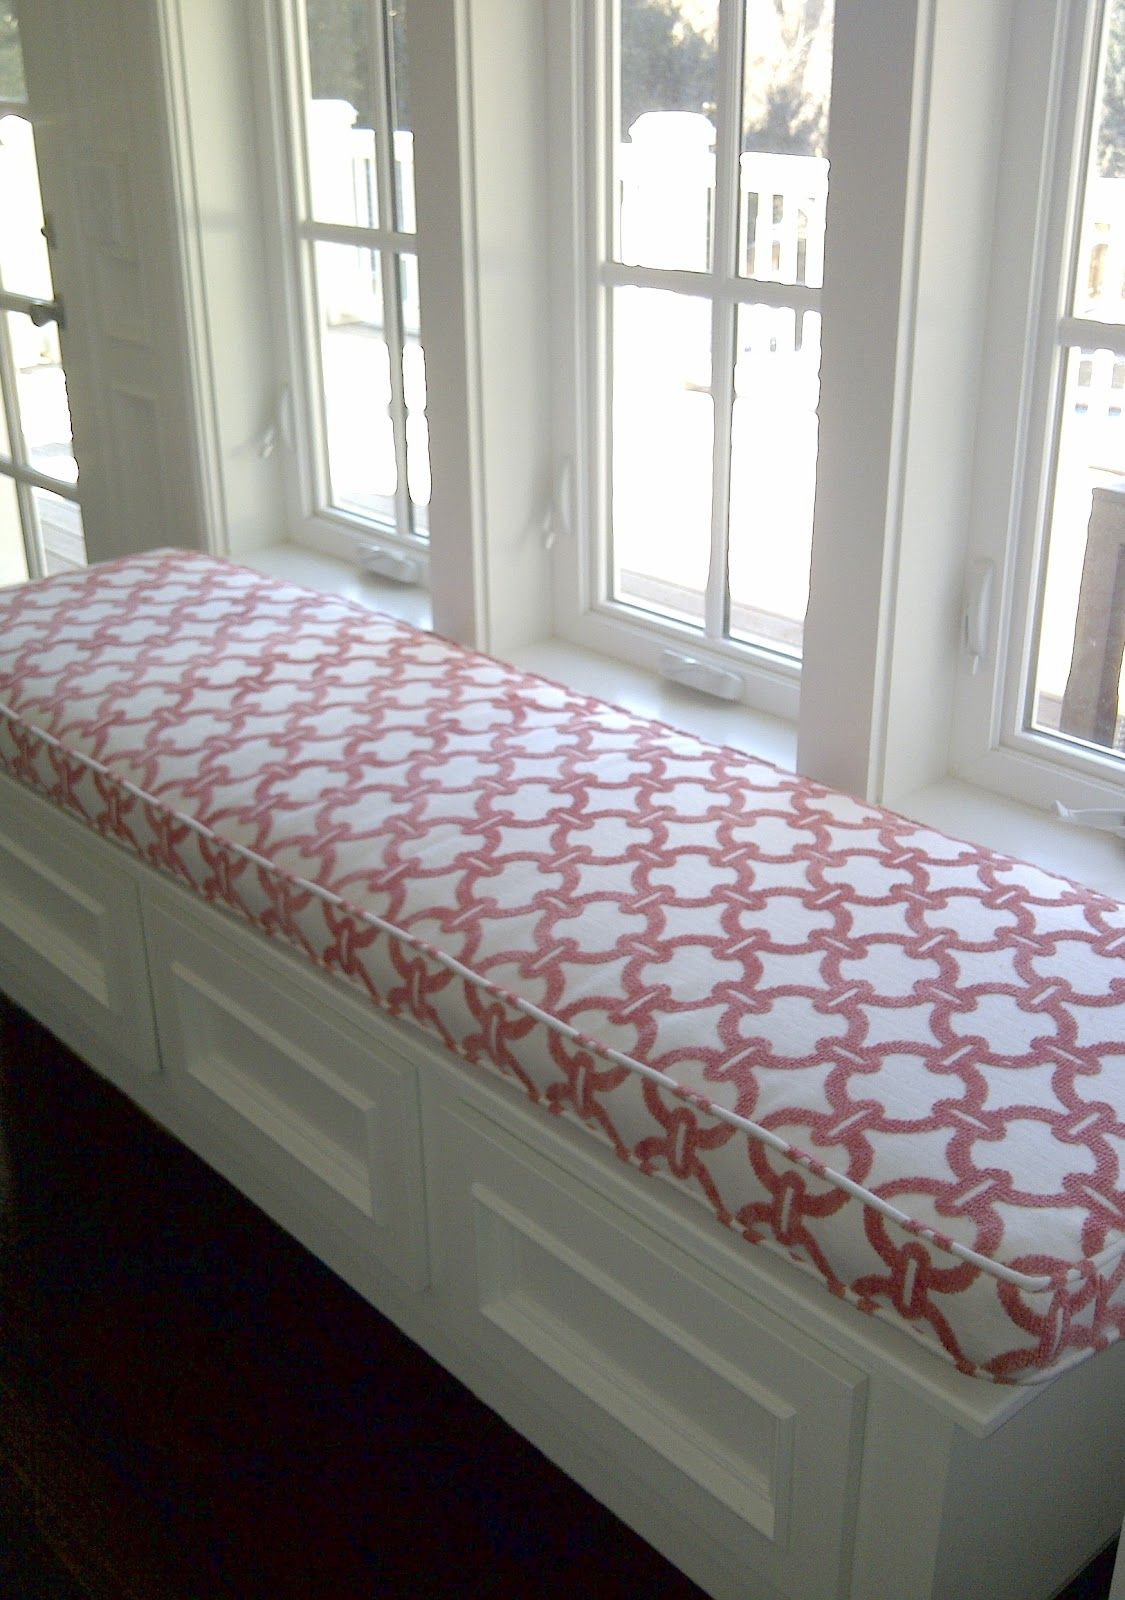 BENCH SEAT CUSHION Indoor bench seating, Bench seat